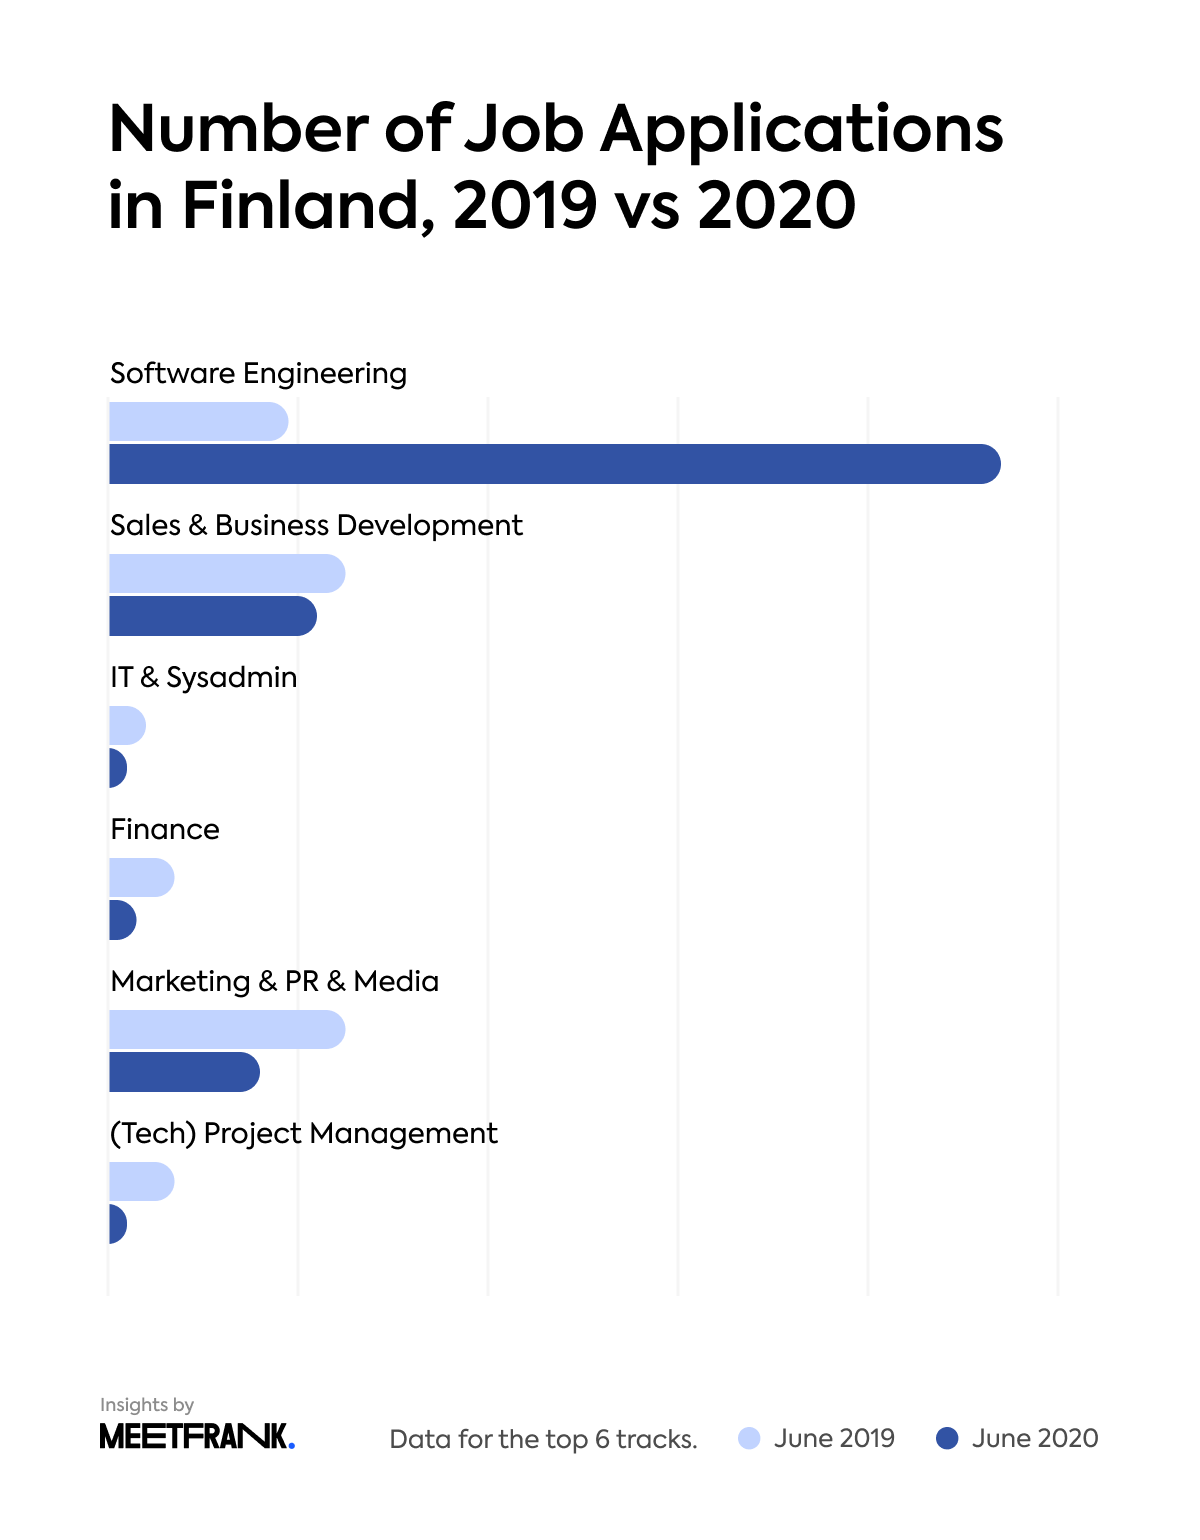 the number of job applications in Finland in 2019 vs 2020